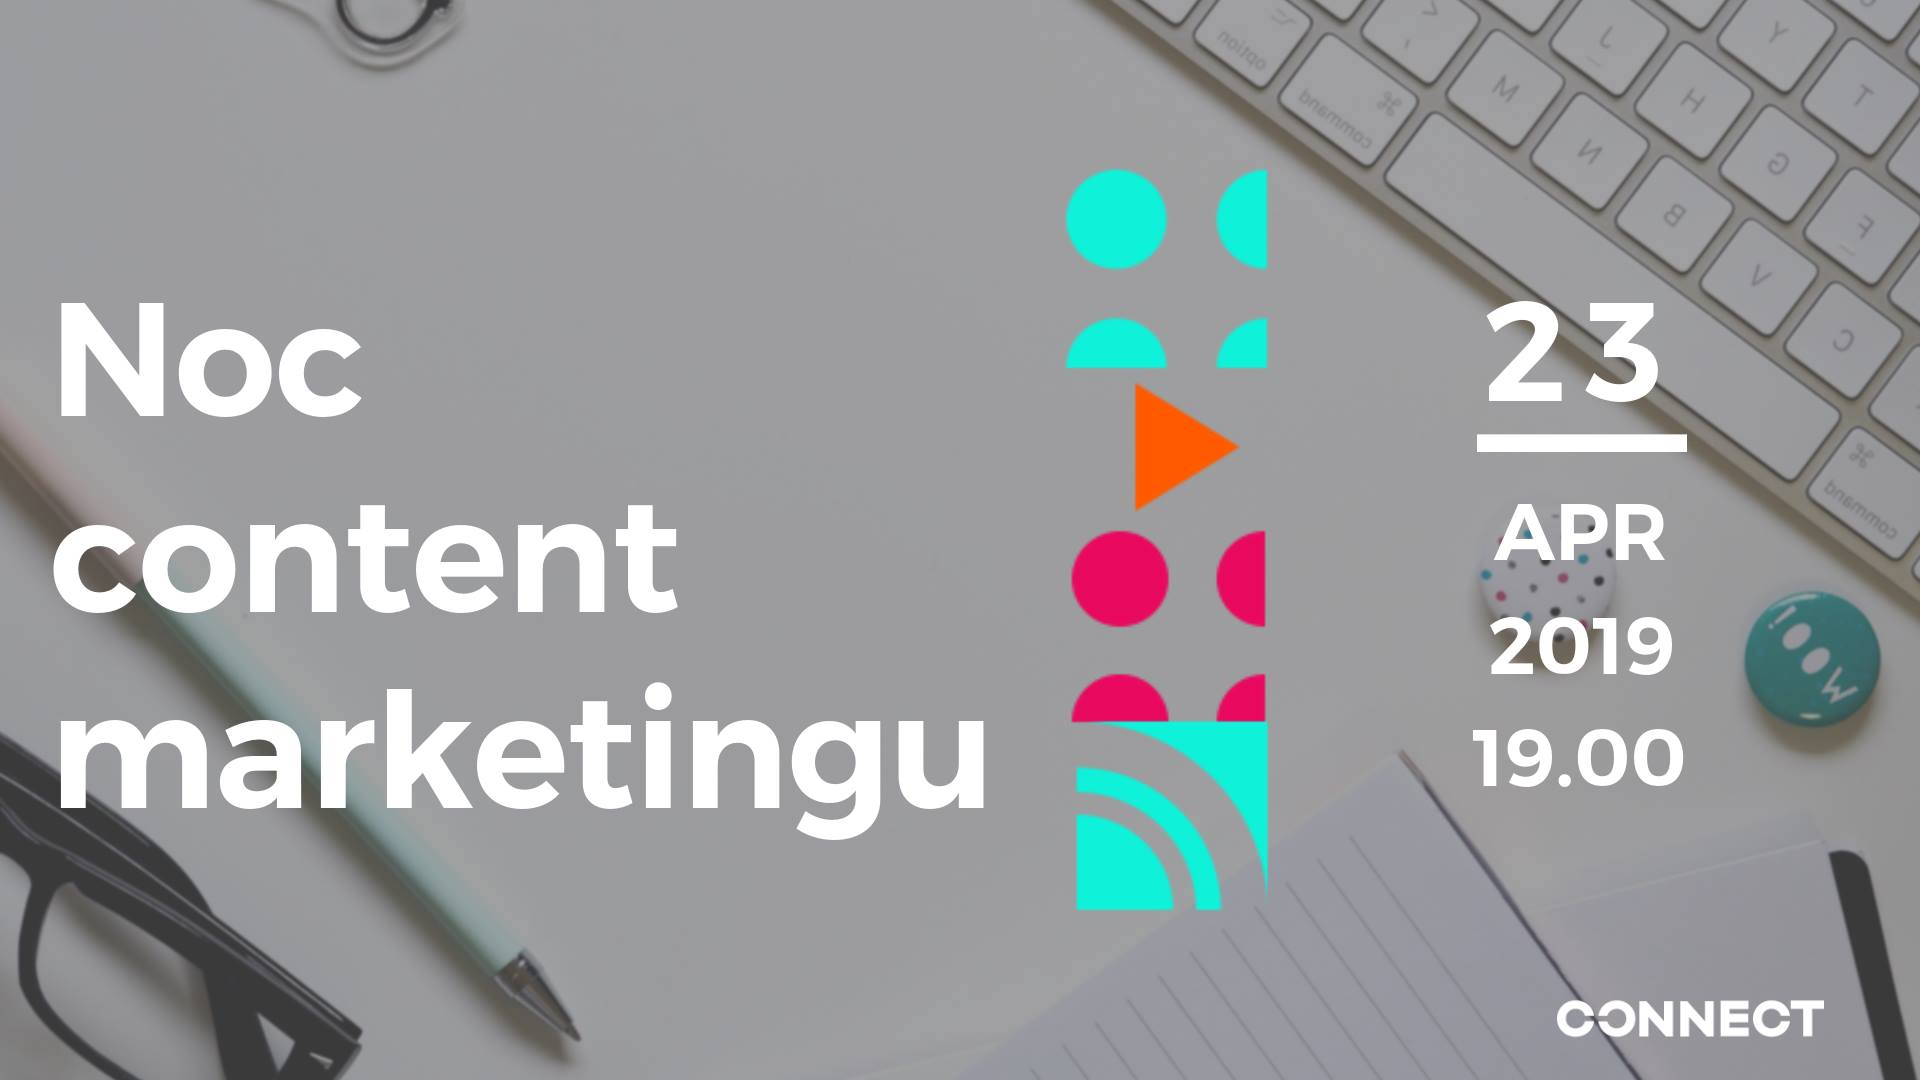 NOC content marketingu/ 23.4.2019